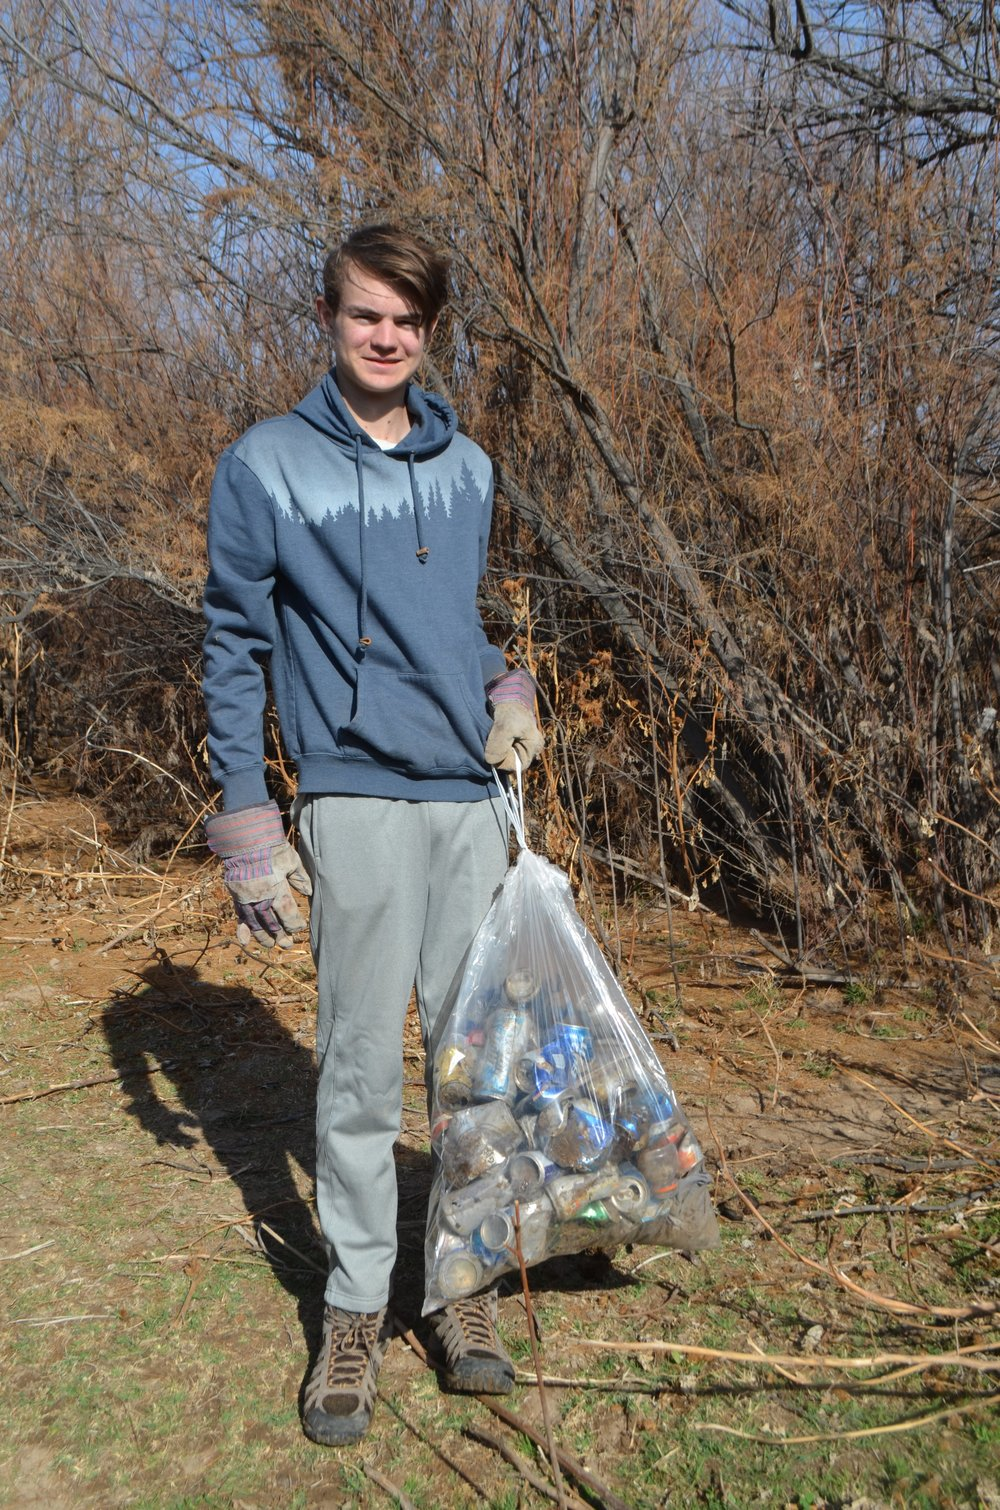 Coon Bluff Cleanup 2-17-18 093 c.jpg